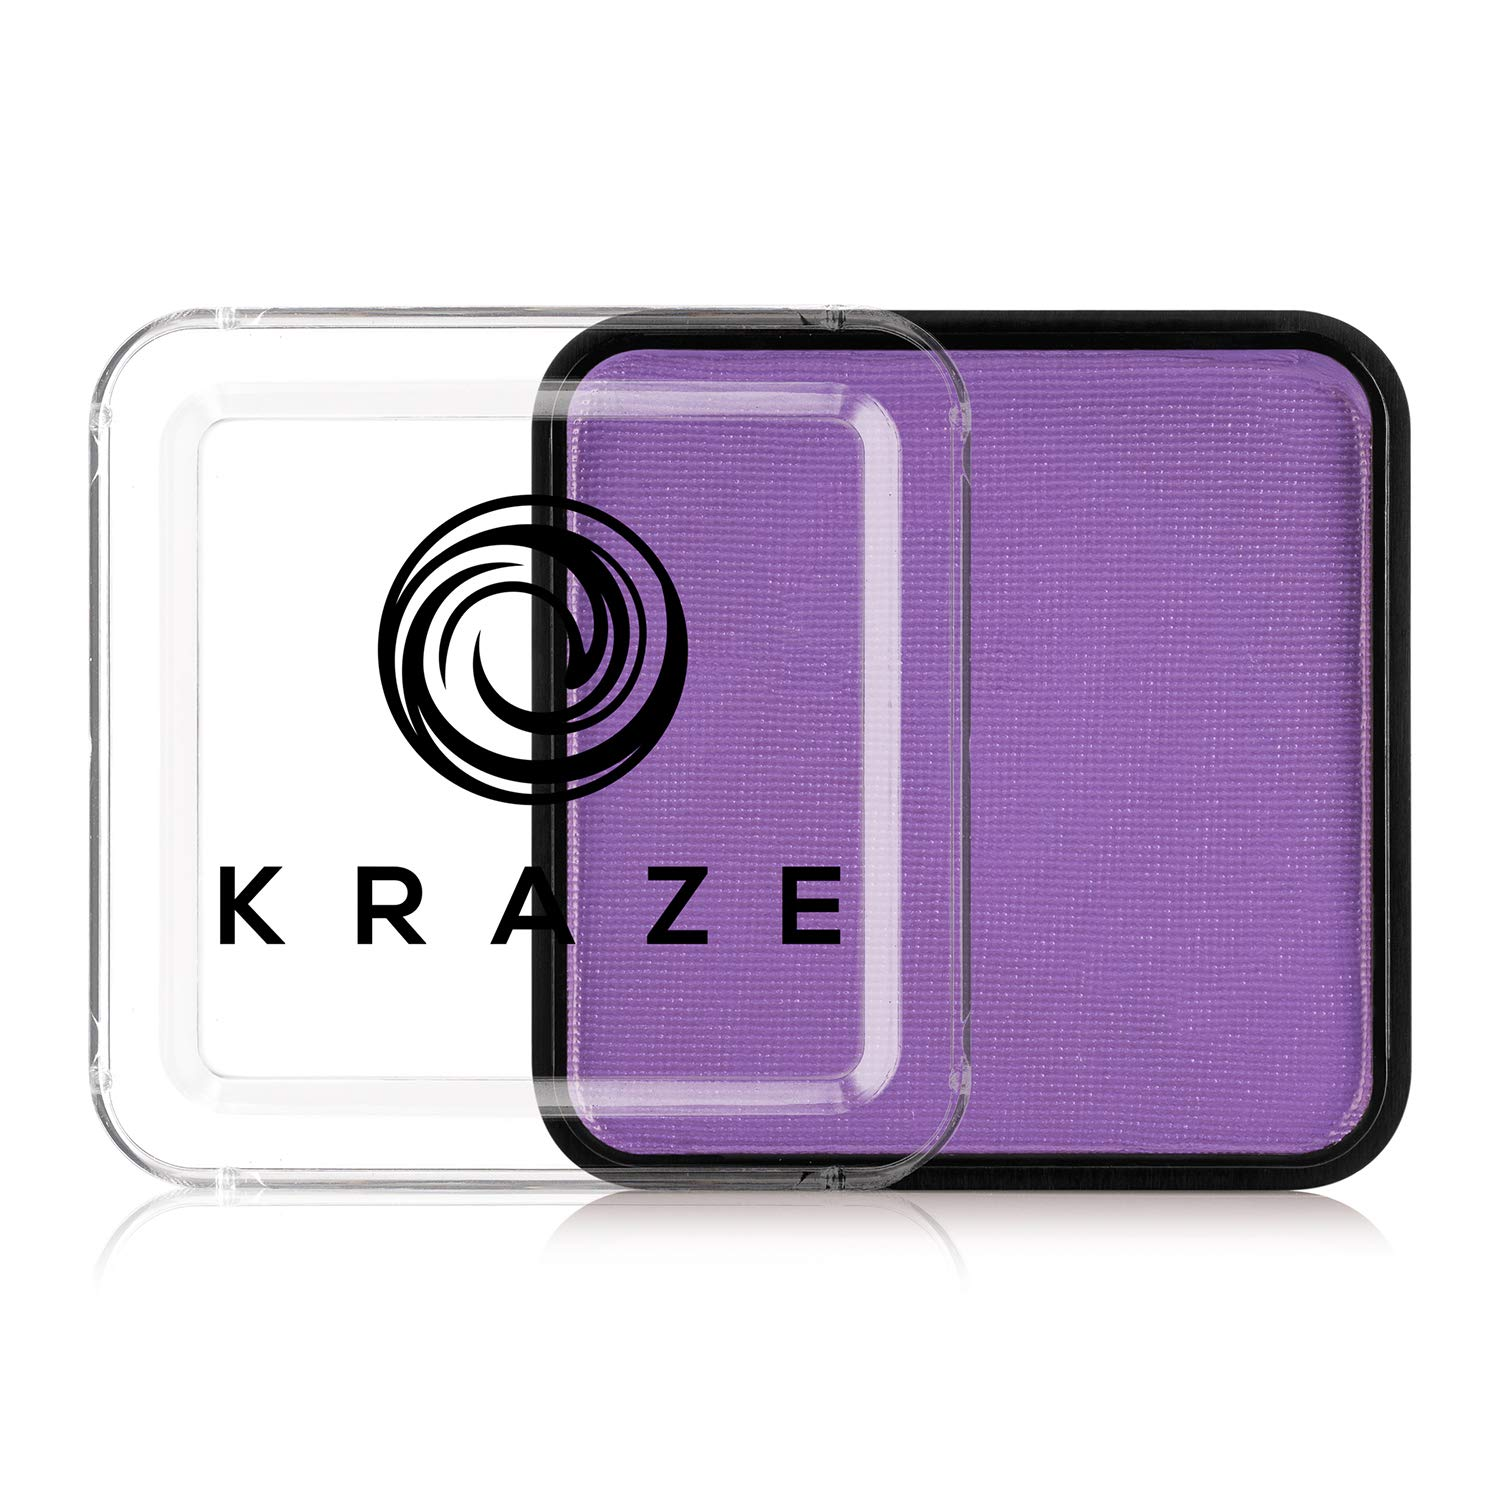 Kraze FX Square - Neon Purple (25 gm) - Water Activated, Professional UV Glow Blacklight Reactive Face Painting Colors, Hypoallergenic, Safe, Washable Fluorescent Face & Body Paint